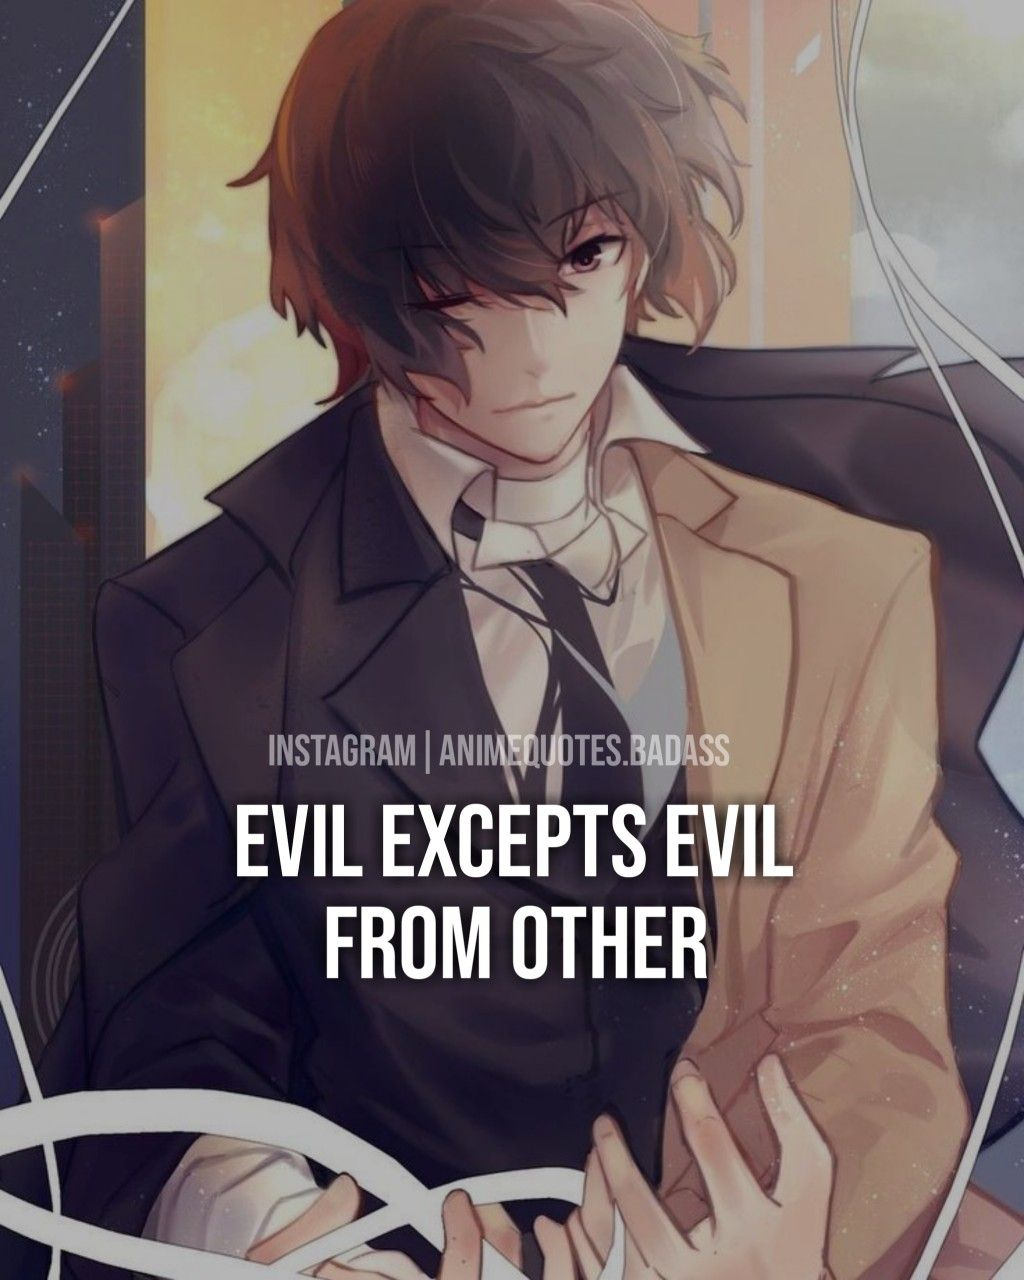 best quotes insoirational quotes True quotes anime best